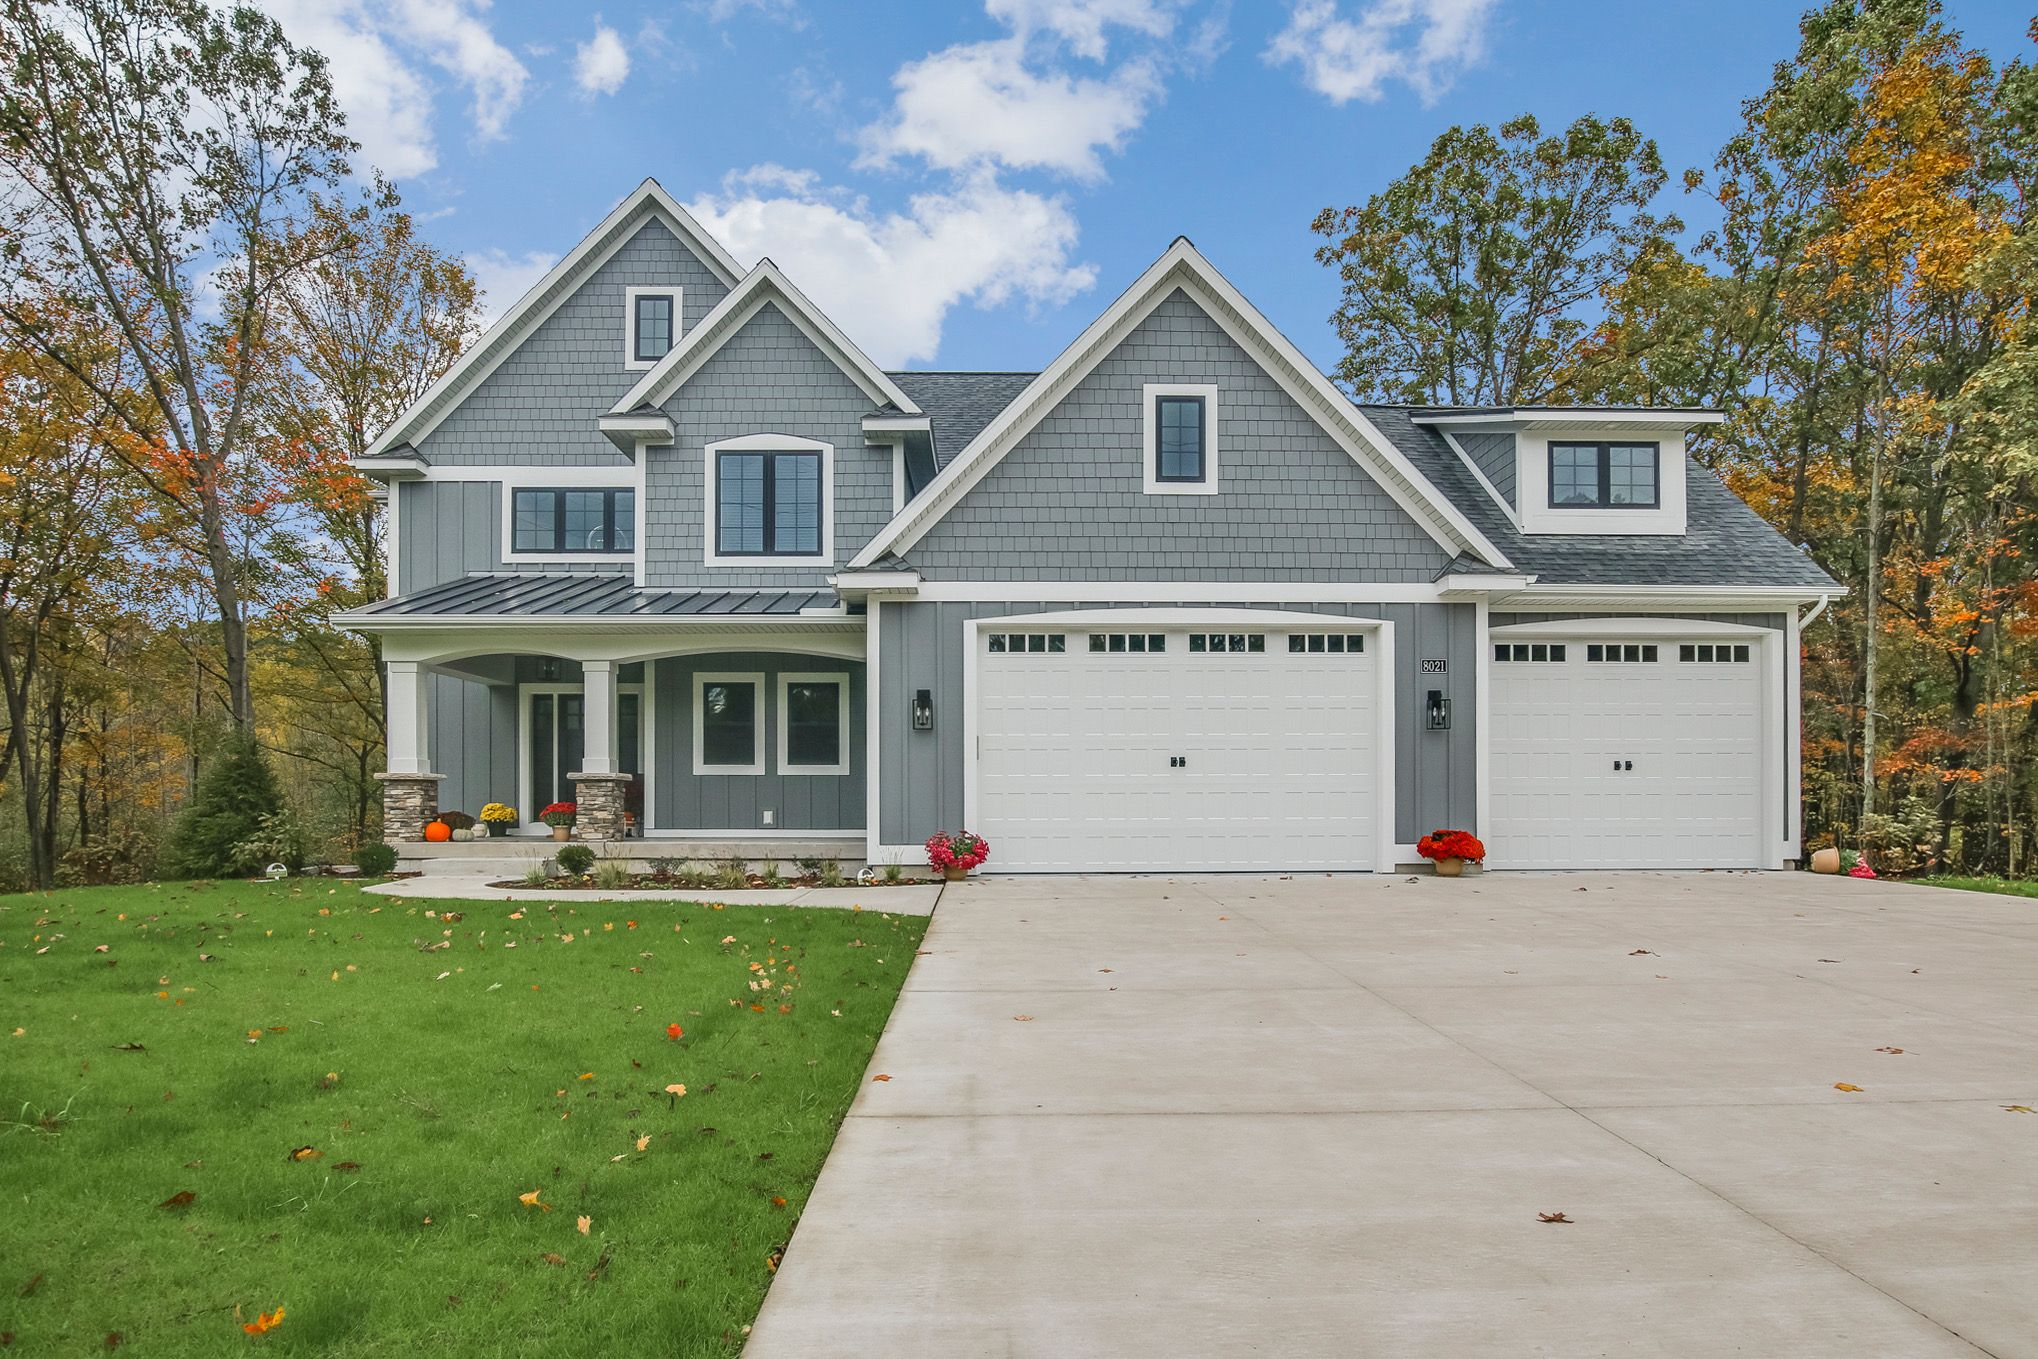 Front Elevation With Granite : Mastic deep granite siding ont elevation new house